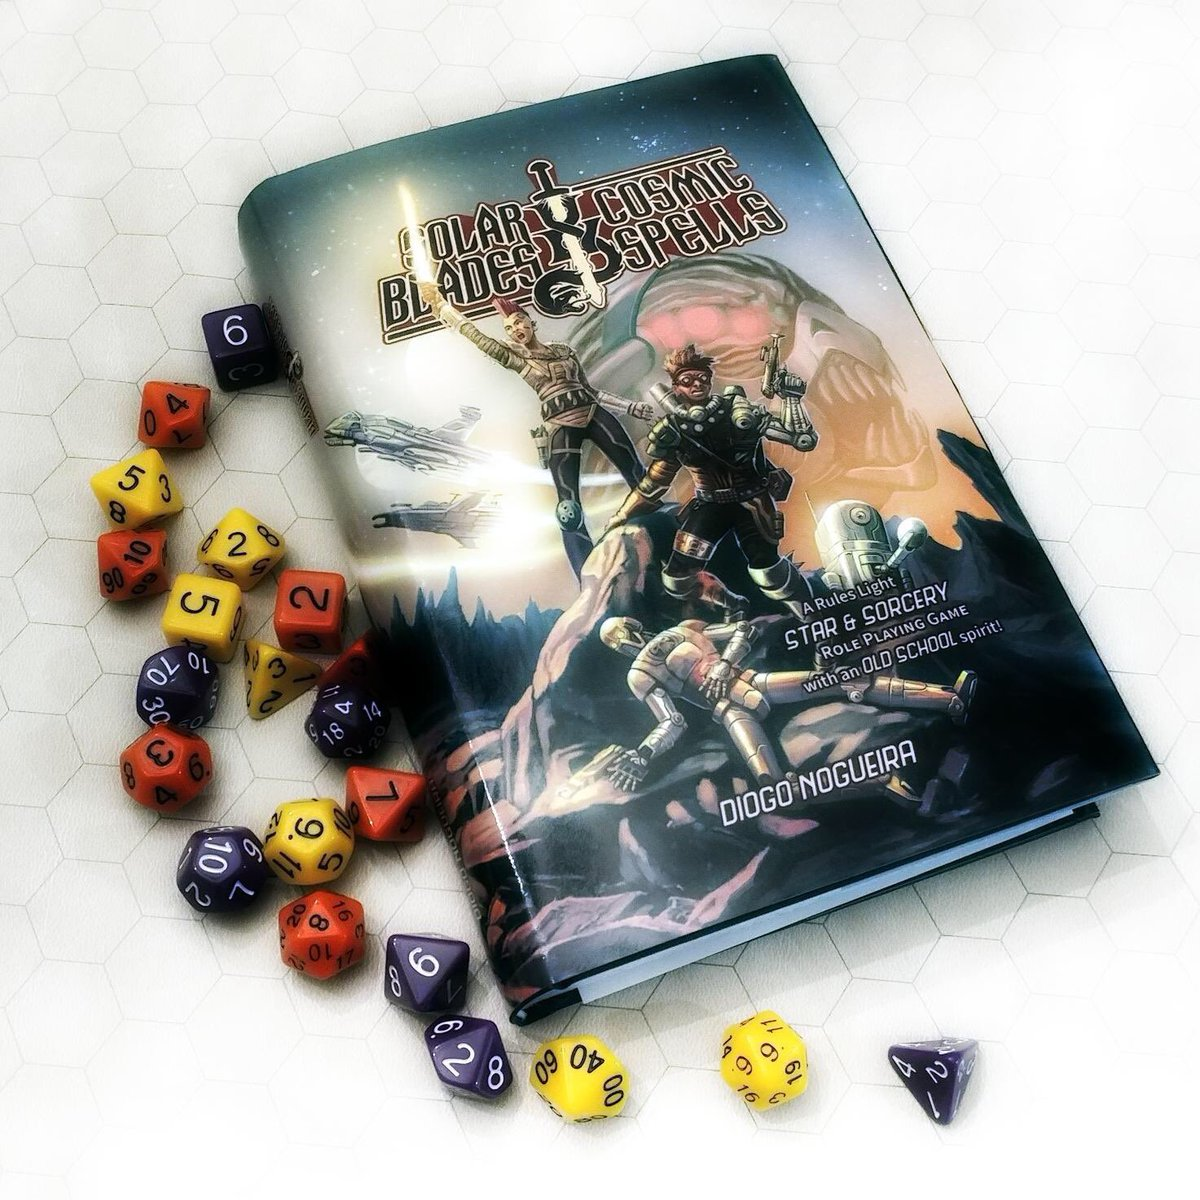 freerpgday hashtag on Twitter